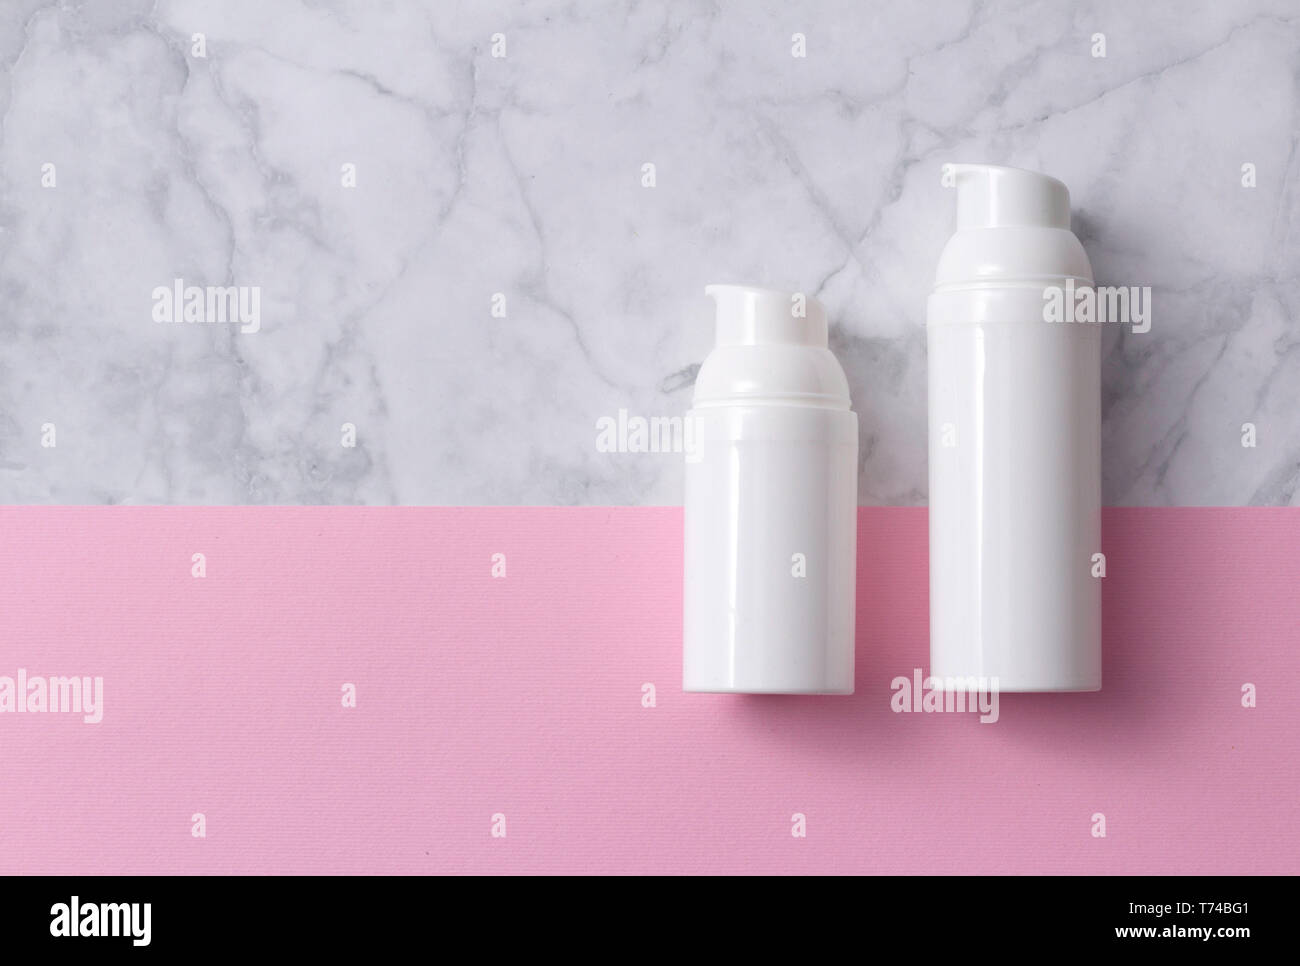 Natural Skincare Cosmetic Product On Gray Marble Background Skincare Product Concept Stock Photo Alamy